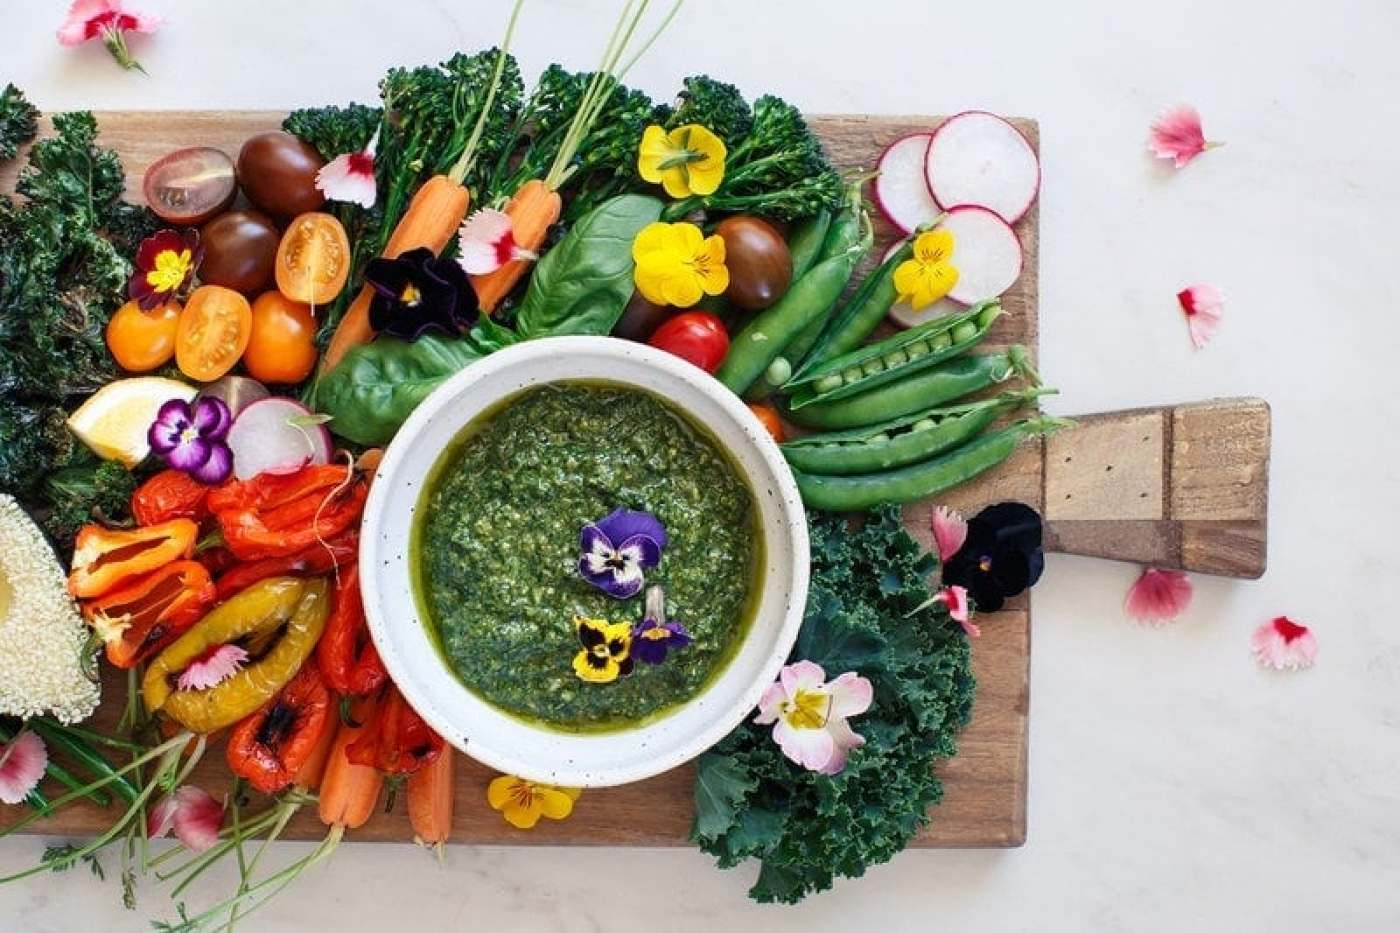 Rustic chopping board filled with coloured raw vegetables and a bowl of green, vegan basil pesto